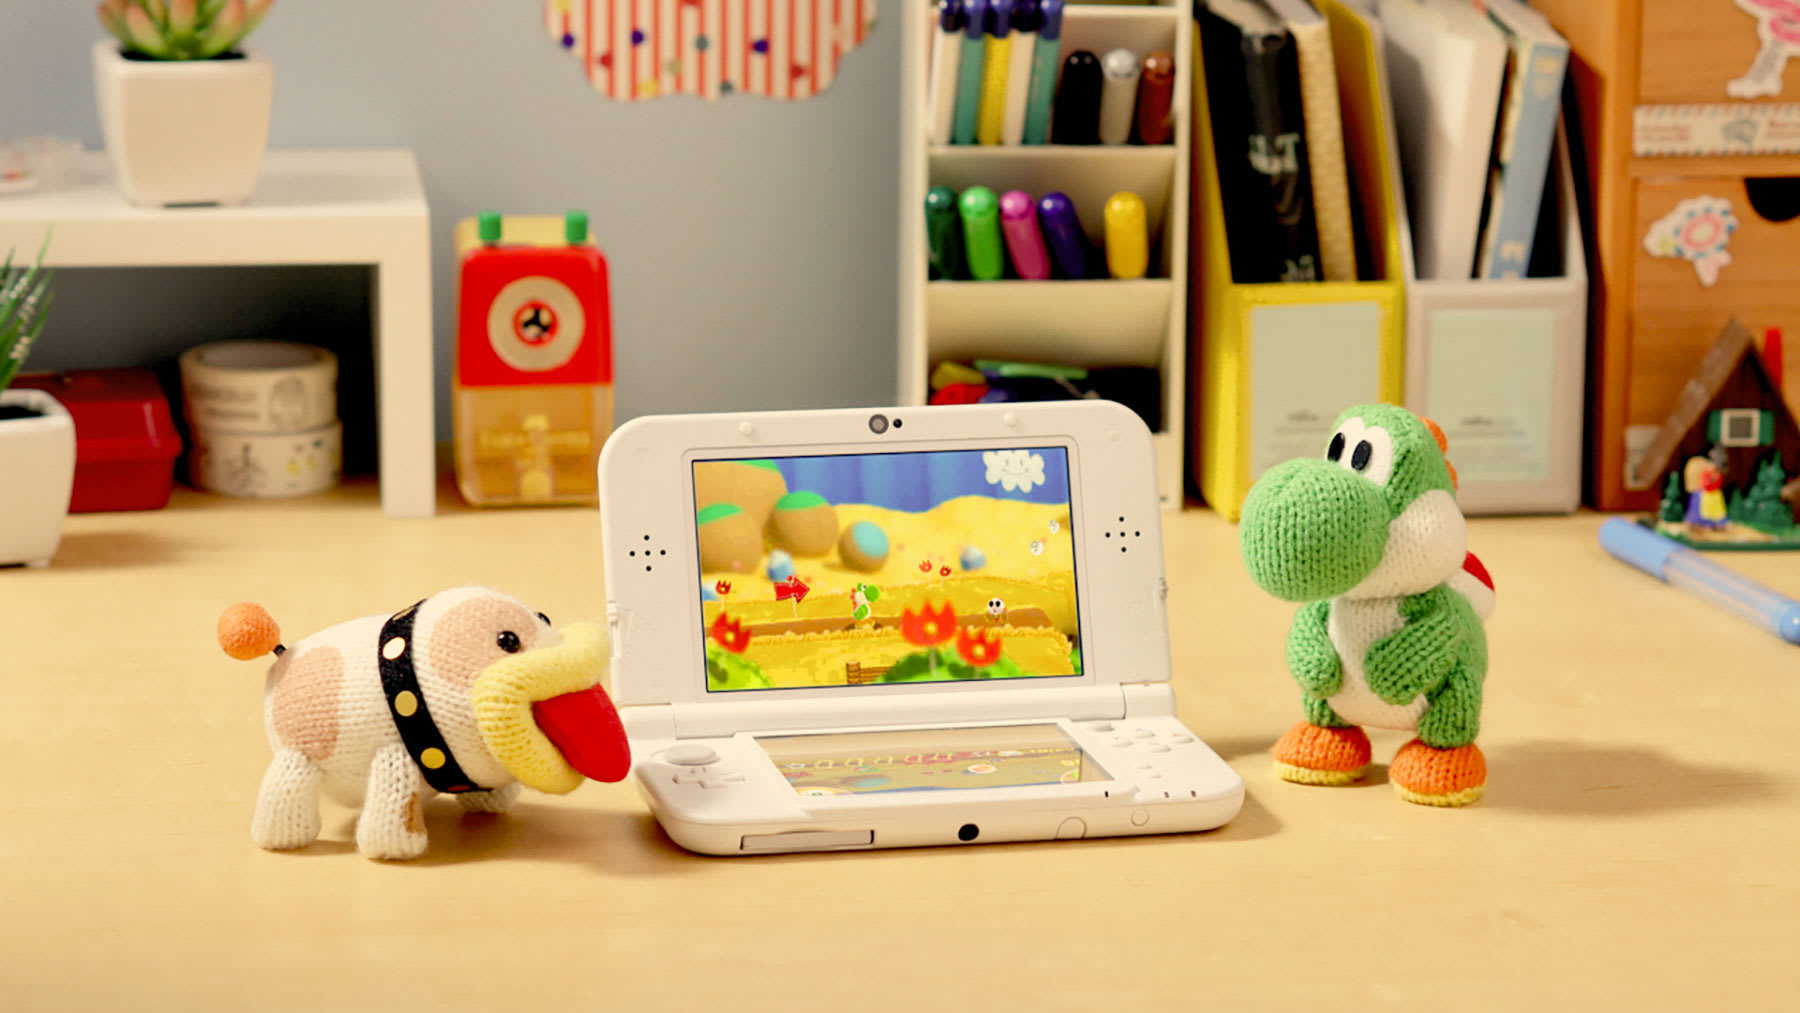 Nintendo's 3DS isn't dead, but it is trapped in the Switch's shadow